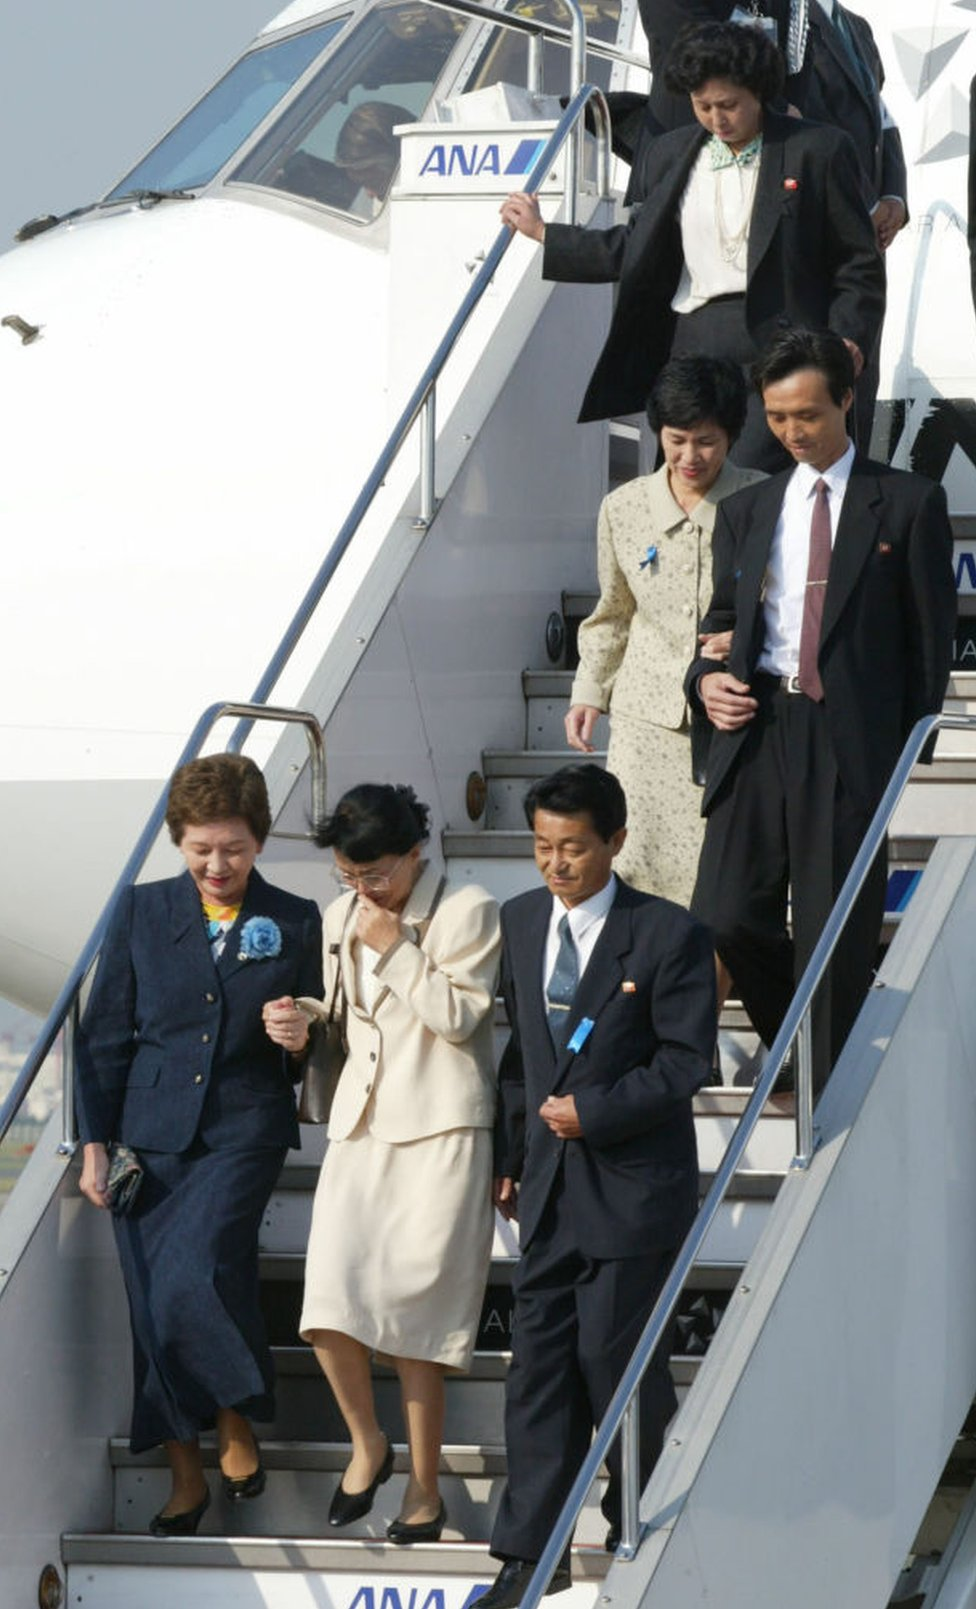 Five Japanese nationals, abducted to North Korea in the 1970s and 80s, arrive at Tokyo's Haneda Airport on October 15, 2002